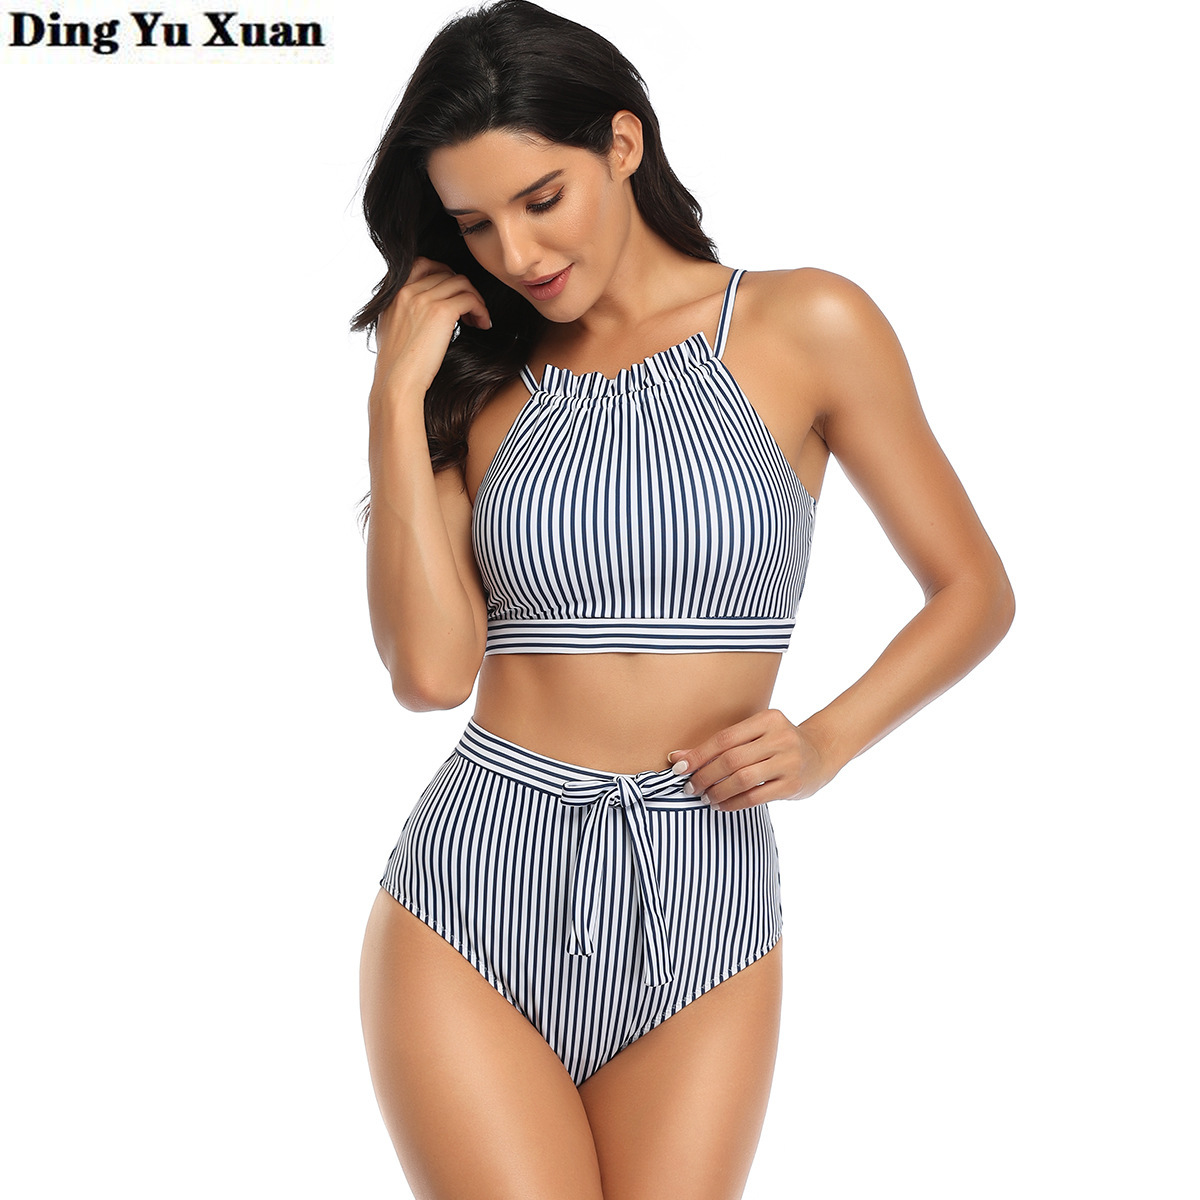 Blue Pink Striped Swimsuit Women 2 Two Pieces Sexy High Waisted Bikini Spaghetti Strap Top and Panty Set Swimming Bathing Suits 2